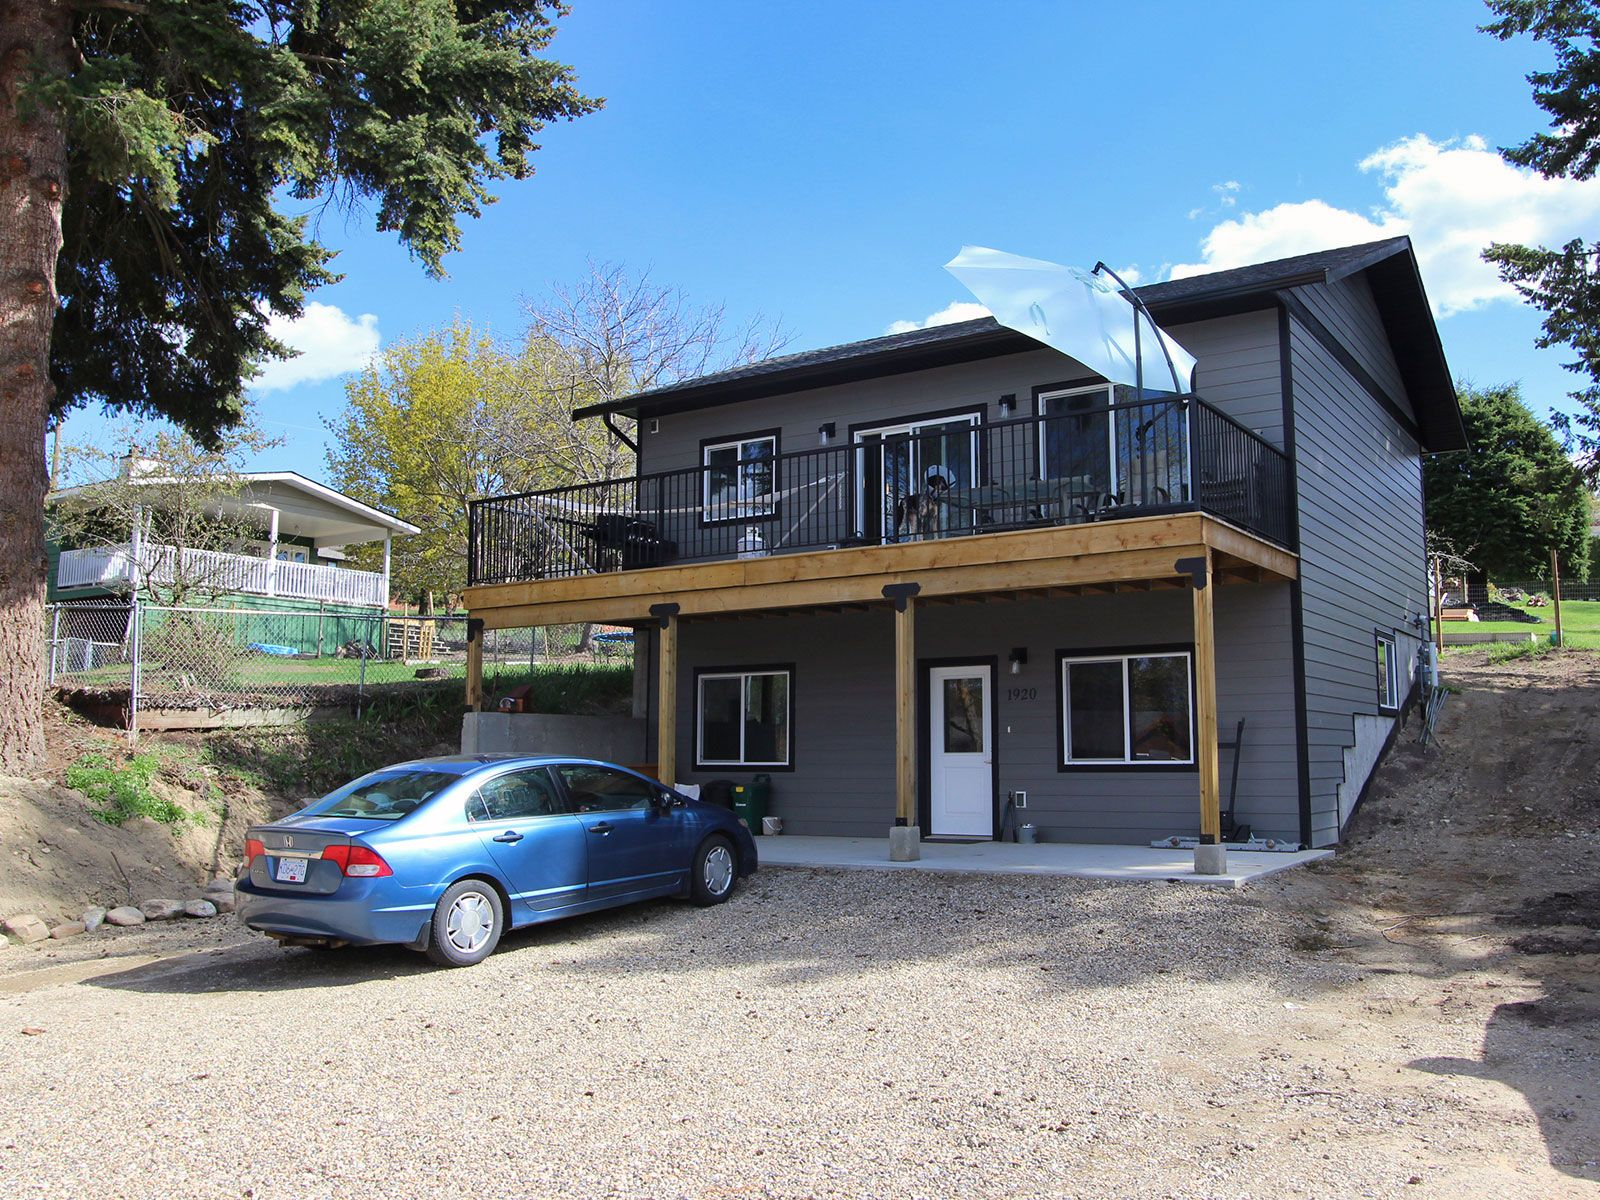 Photo 3: Photos: 1920 SE Okanagan Avenue in Salmon Arm: South East Salmon Arm House for sale : MLS®# 10204567